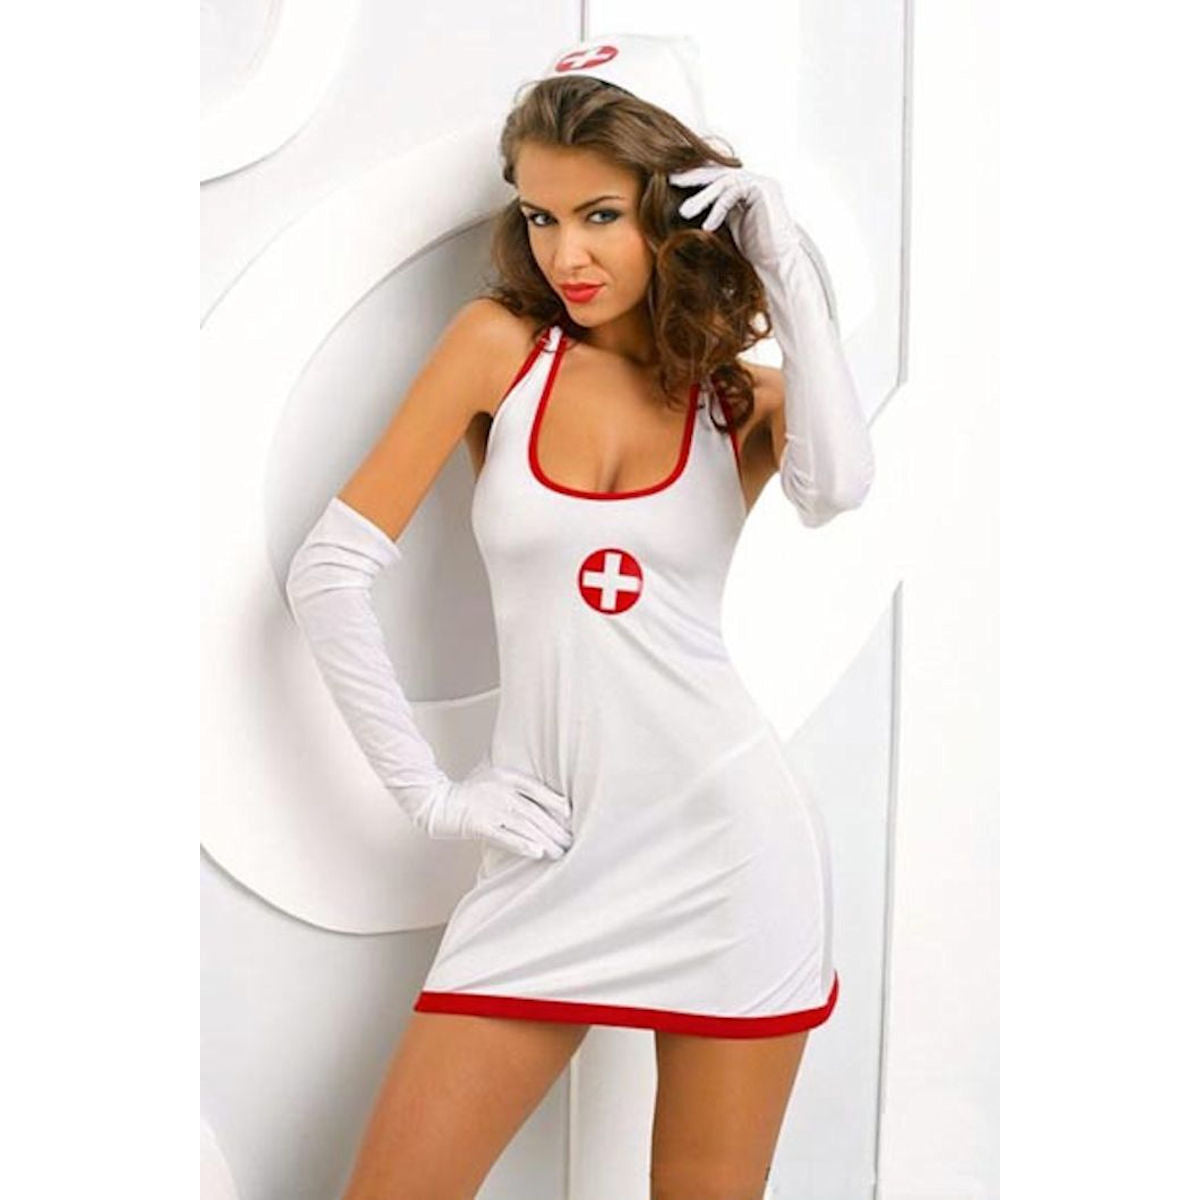 Sexy NURSE COSTUME 5 piece set  with GLOVES